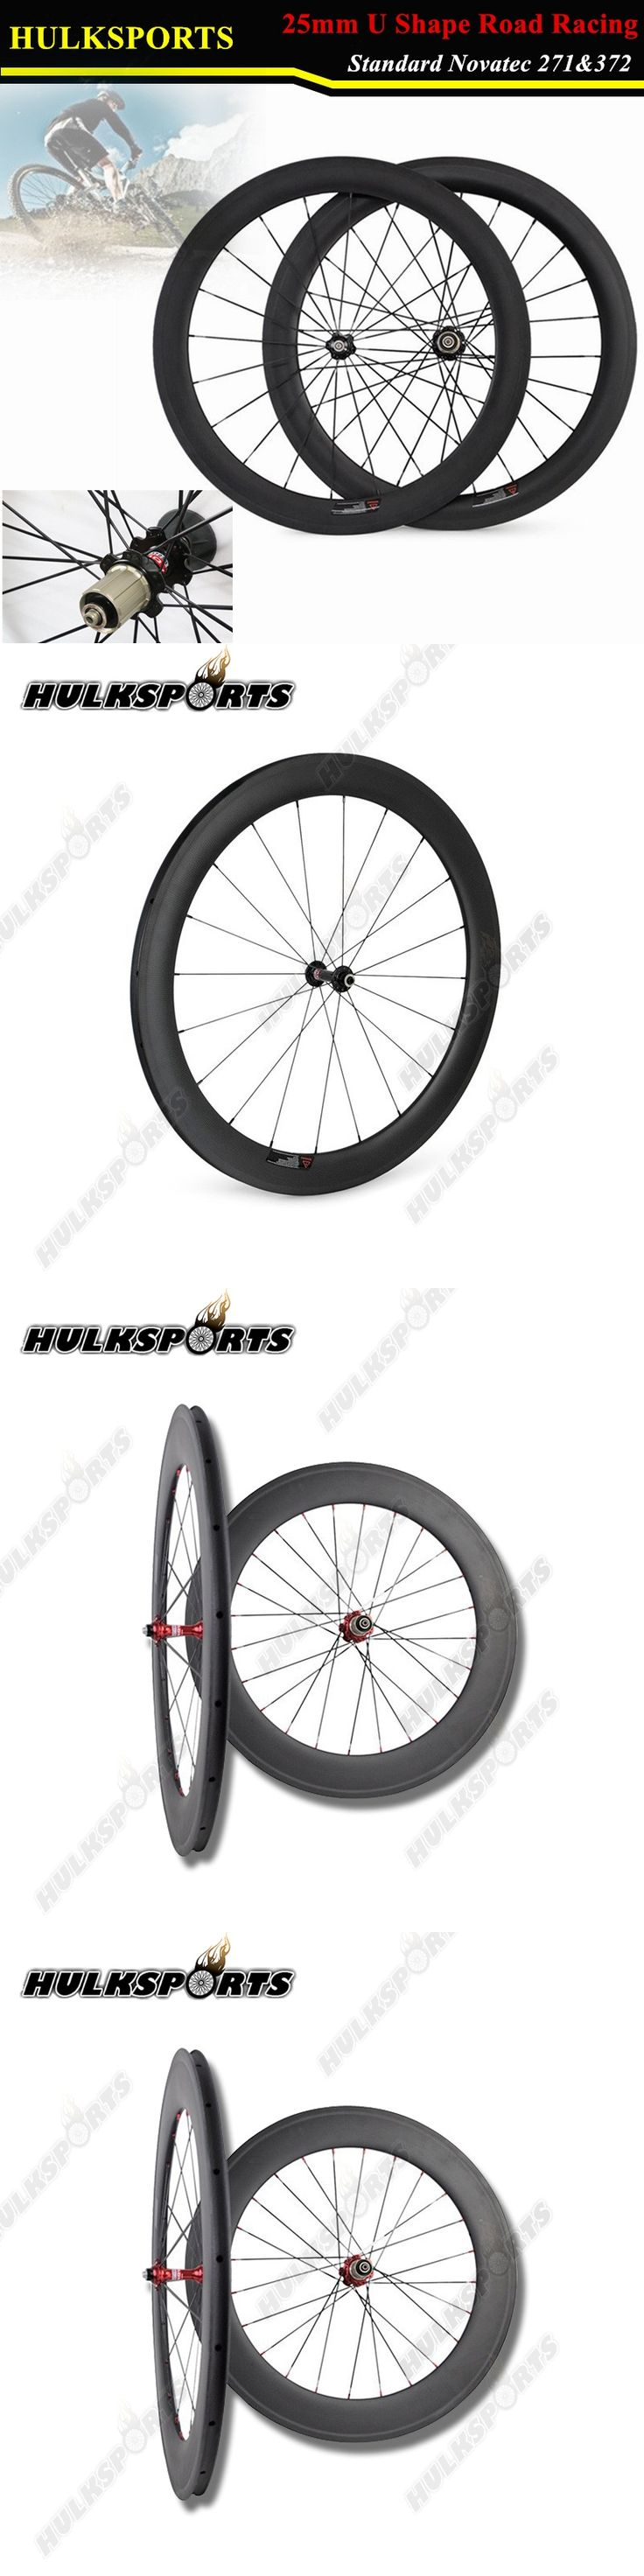 700C carbon wheels Clincher 60mm road cyclo cross wheelset 25mm width UD/3K matte with V brake wheelset HK-WH-60C-W25-C